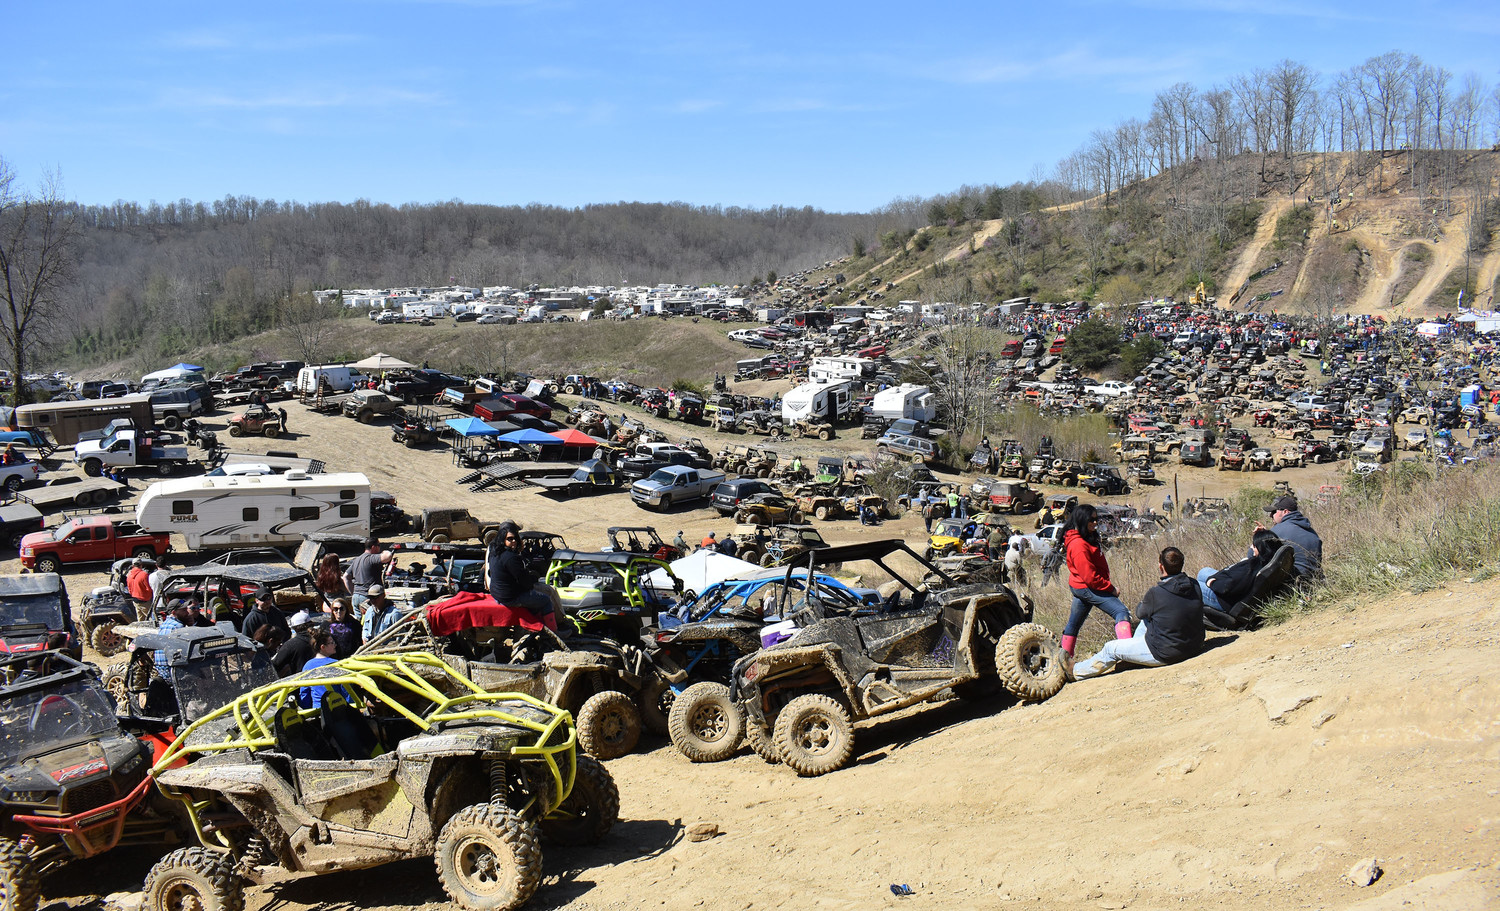 Thousands from around the world have taken advantage of the Rush Off-Road experience in northeastern Kentucky. (Rush Off-Road photo)